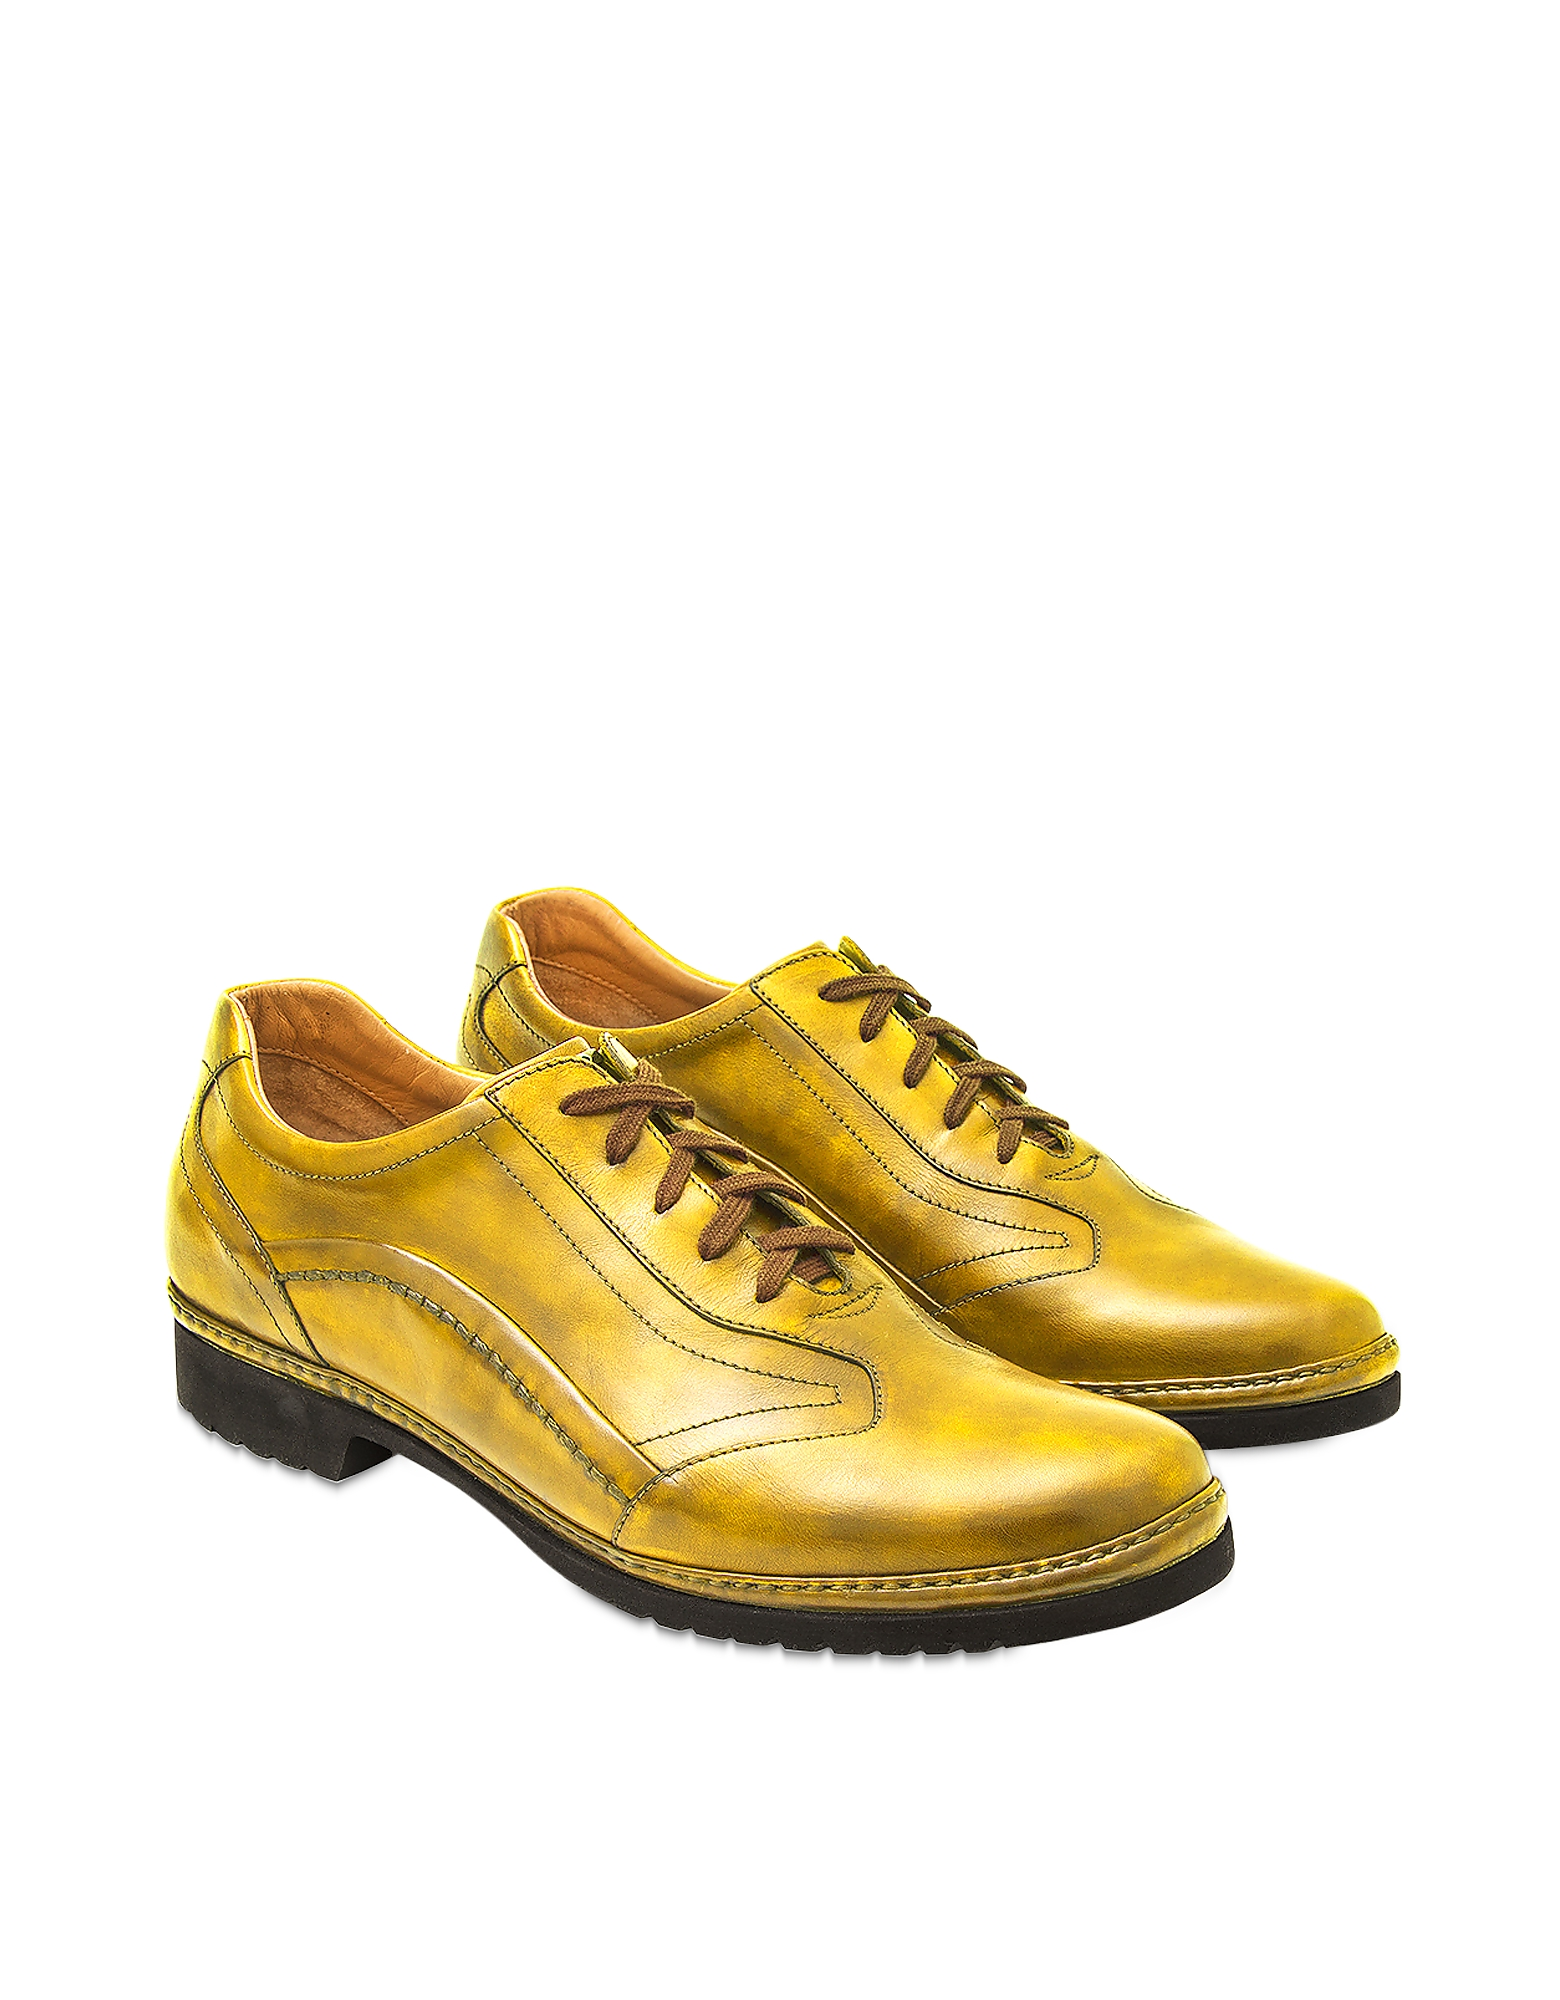 Pakerson Designer Shoes, Yellow Italian Handmade Leather Lace-up Shoes